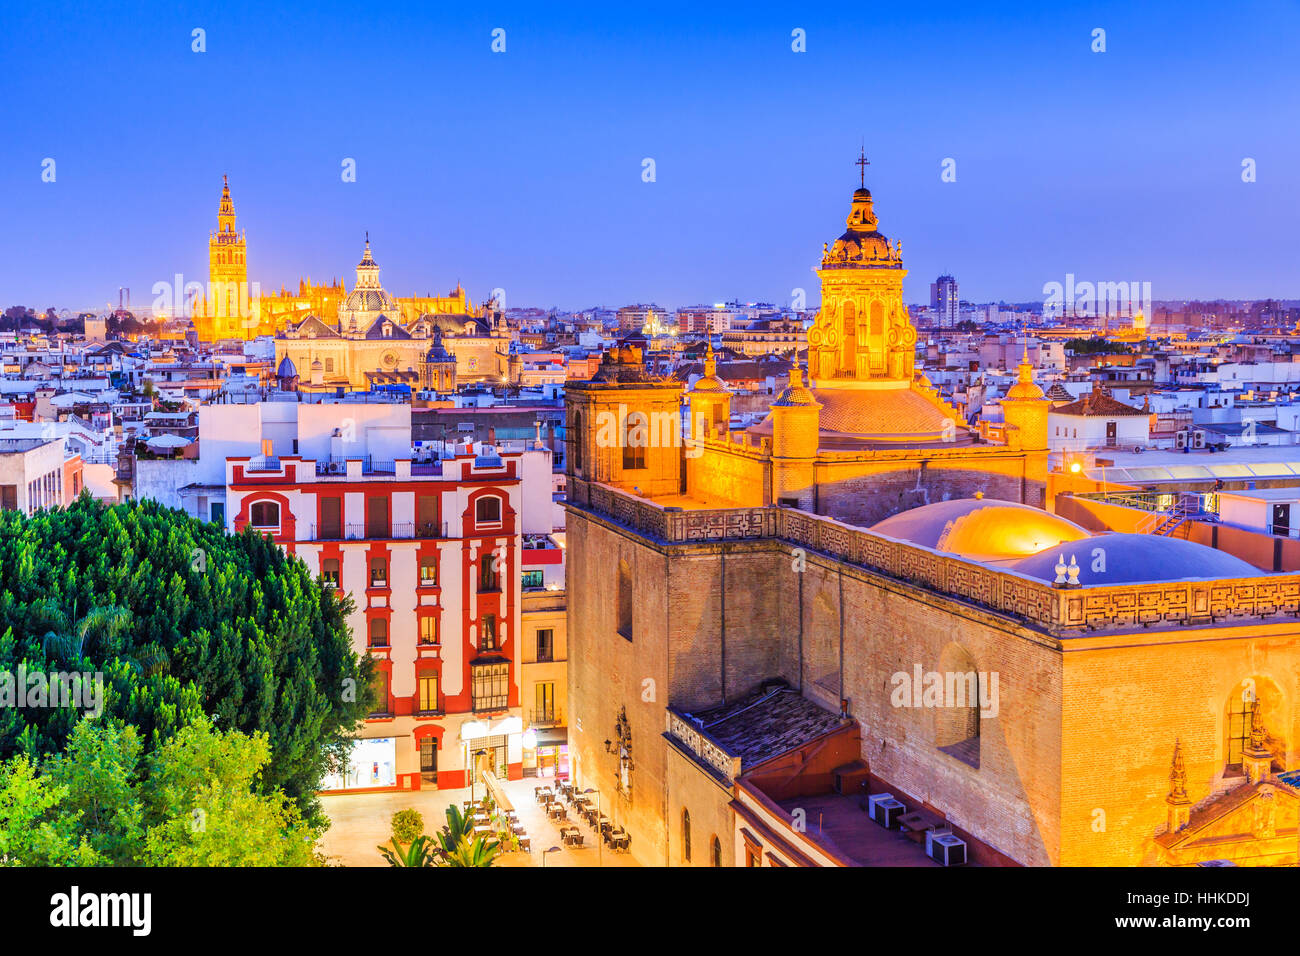 Seville, Spain. - Stock Image